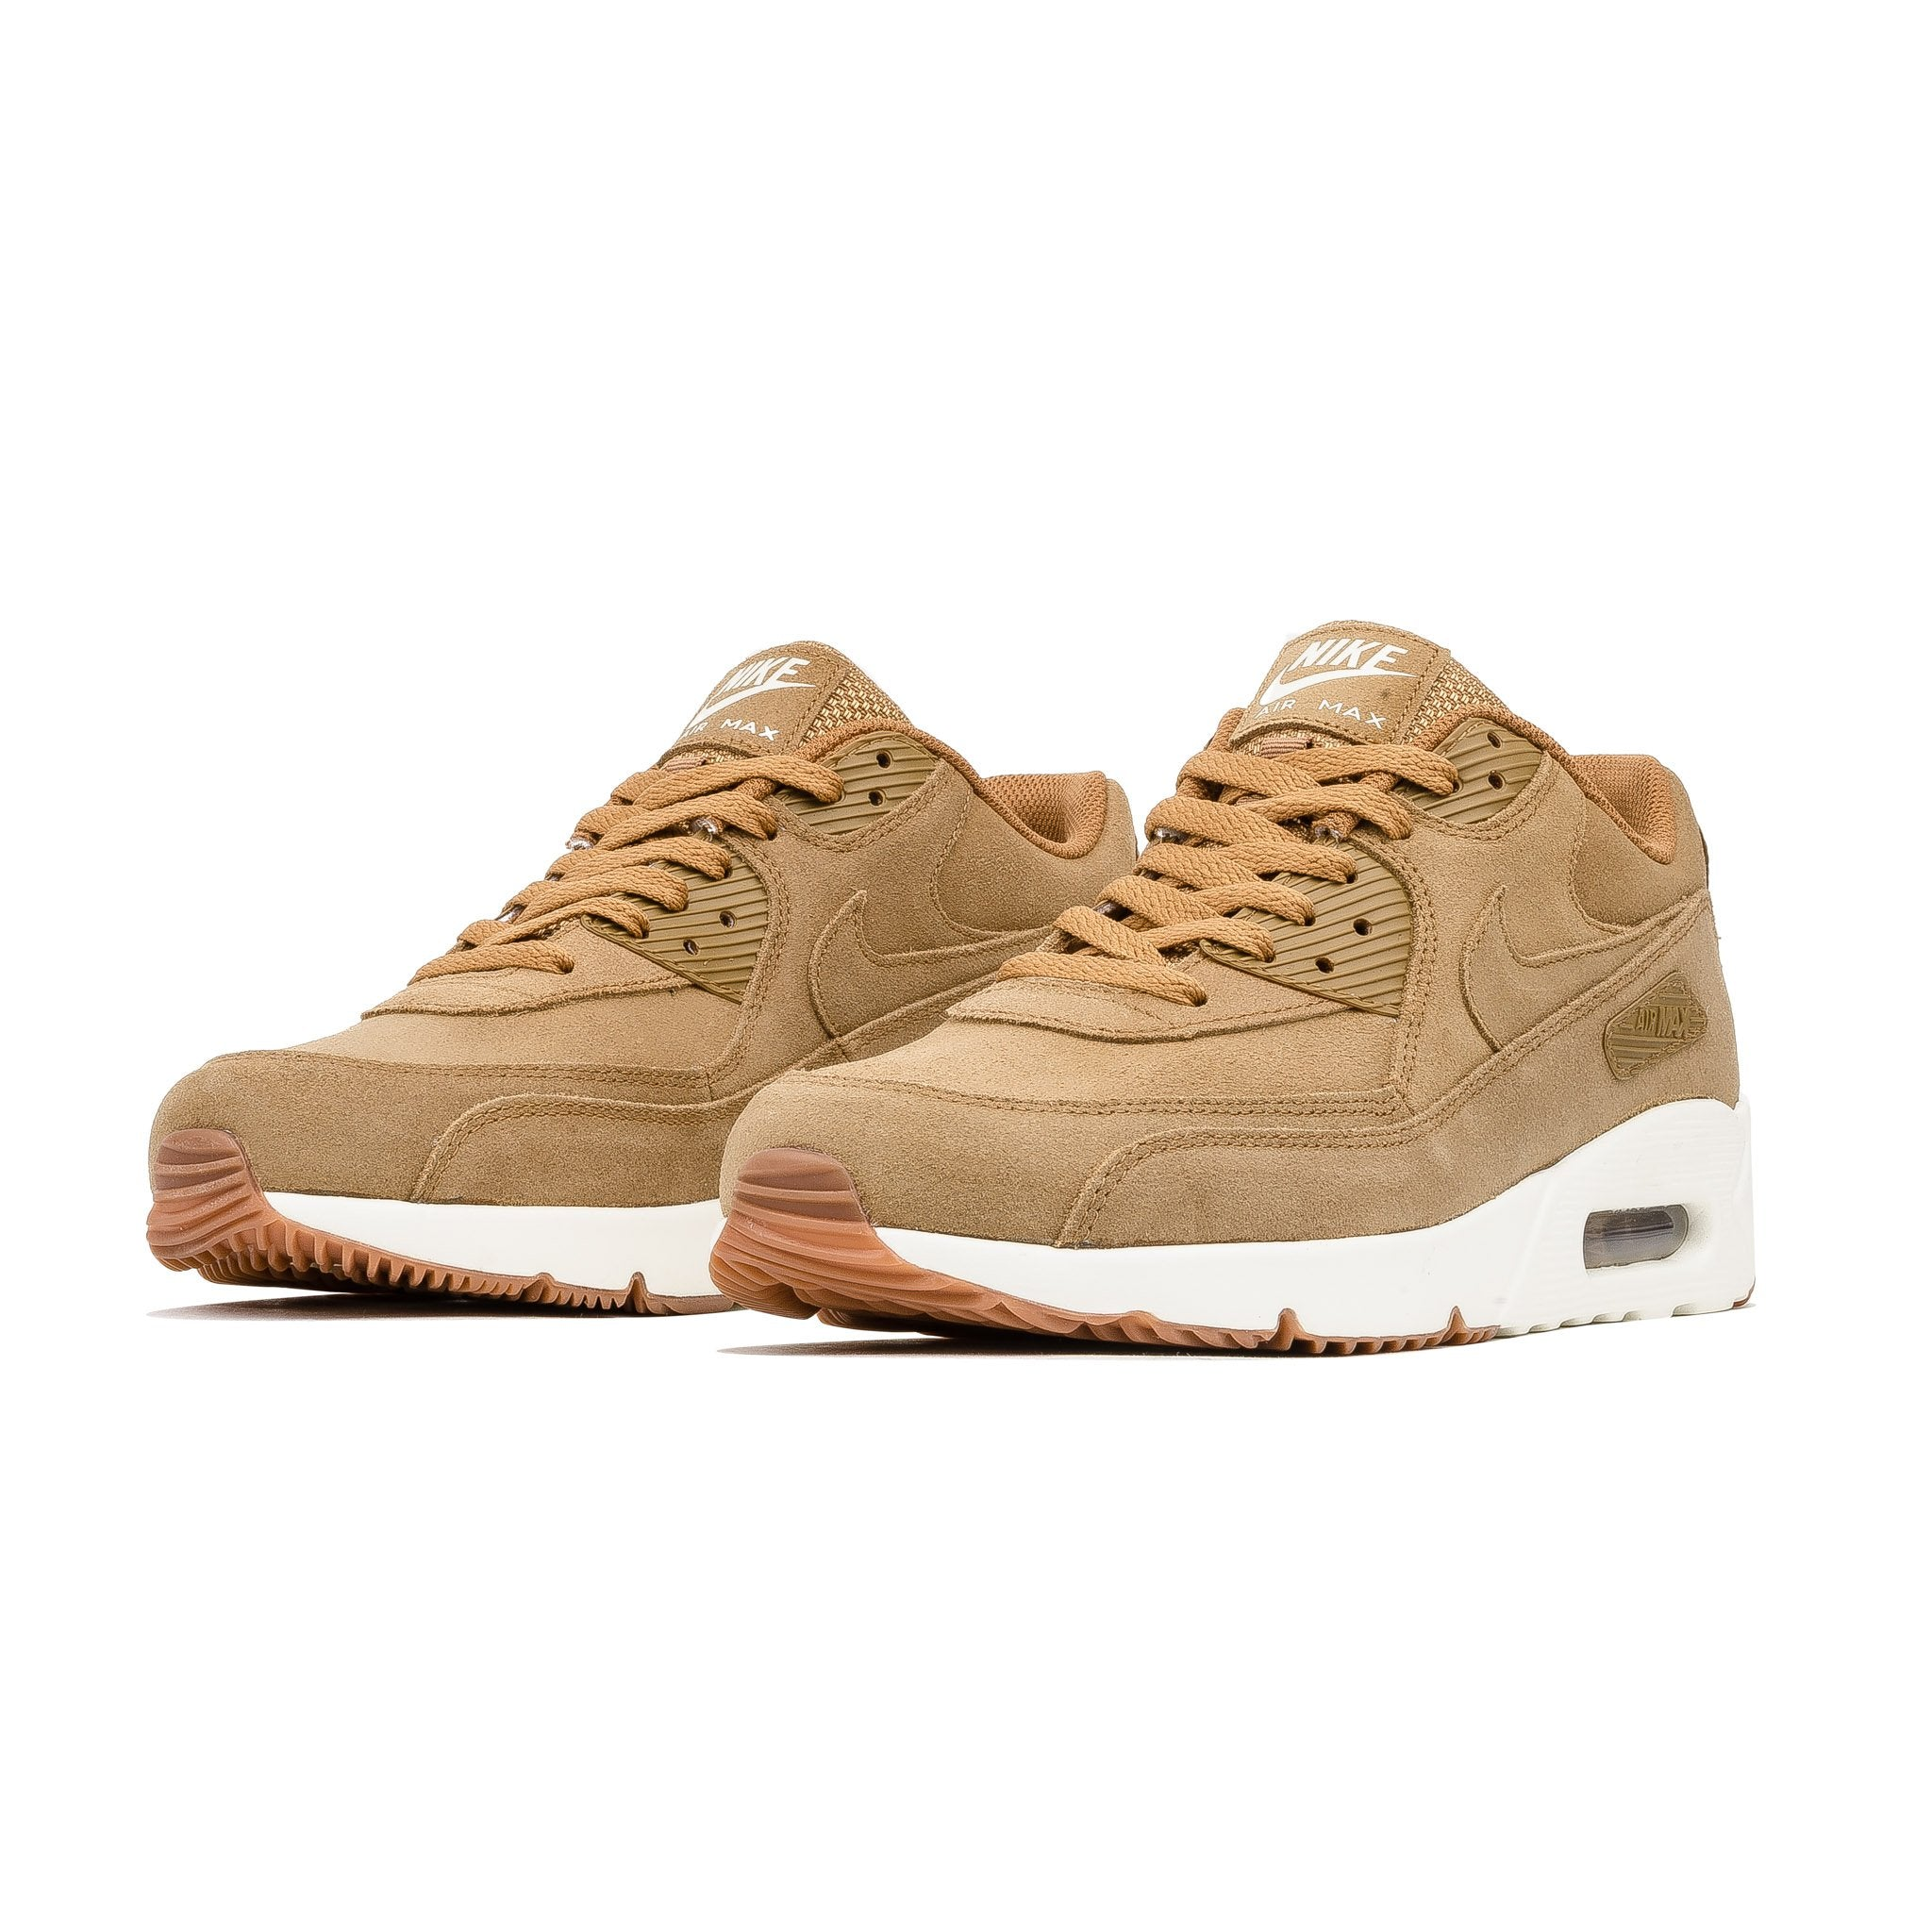 Air Max 90 Ultra 2.0 LTR 924447-200 Flax